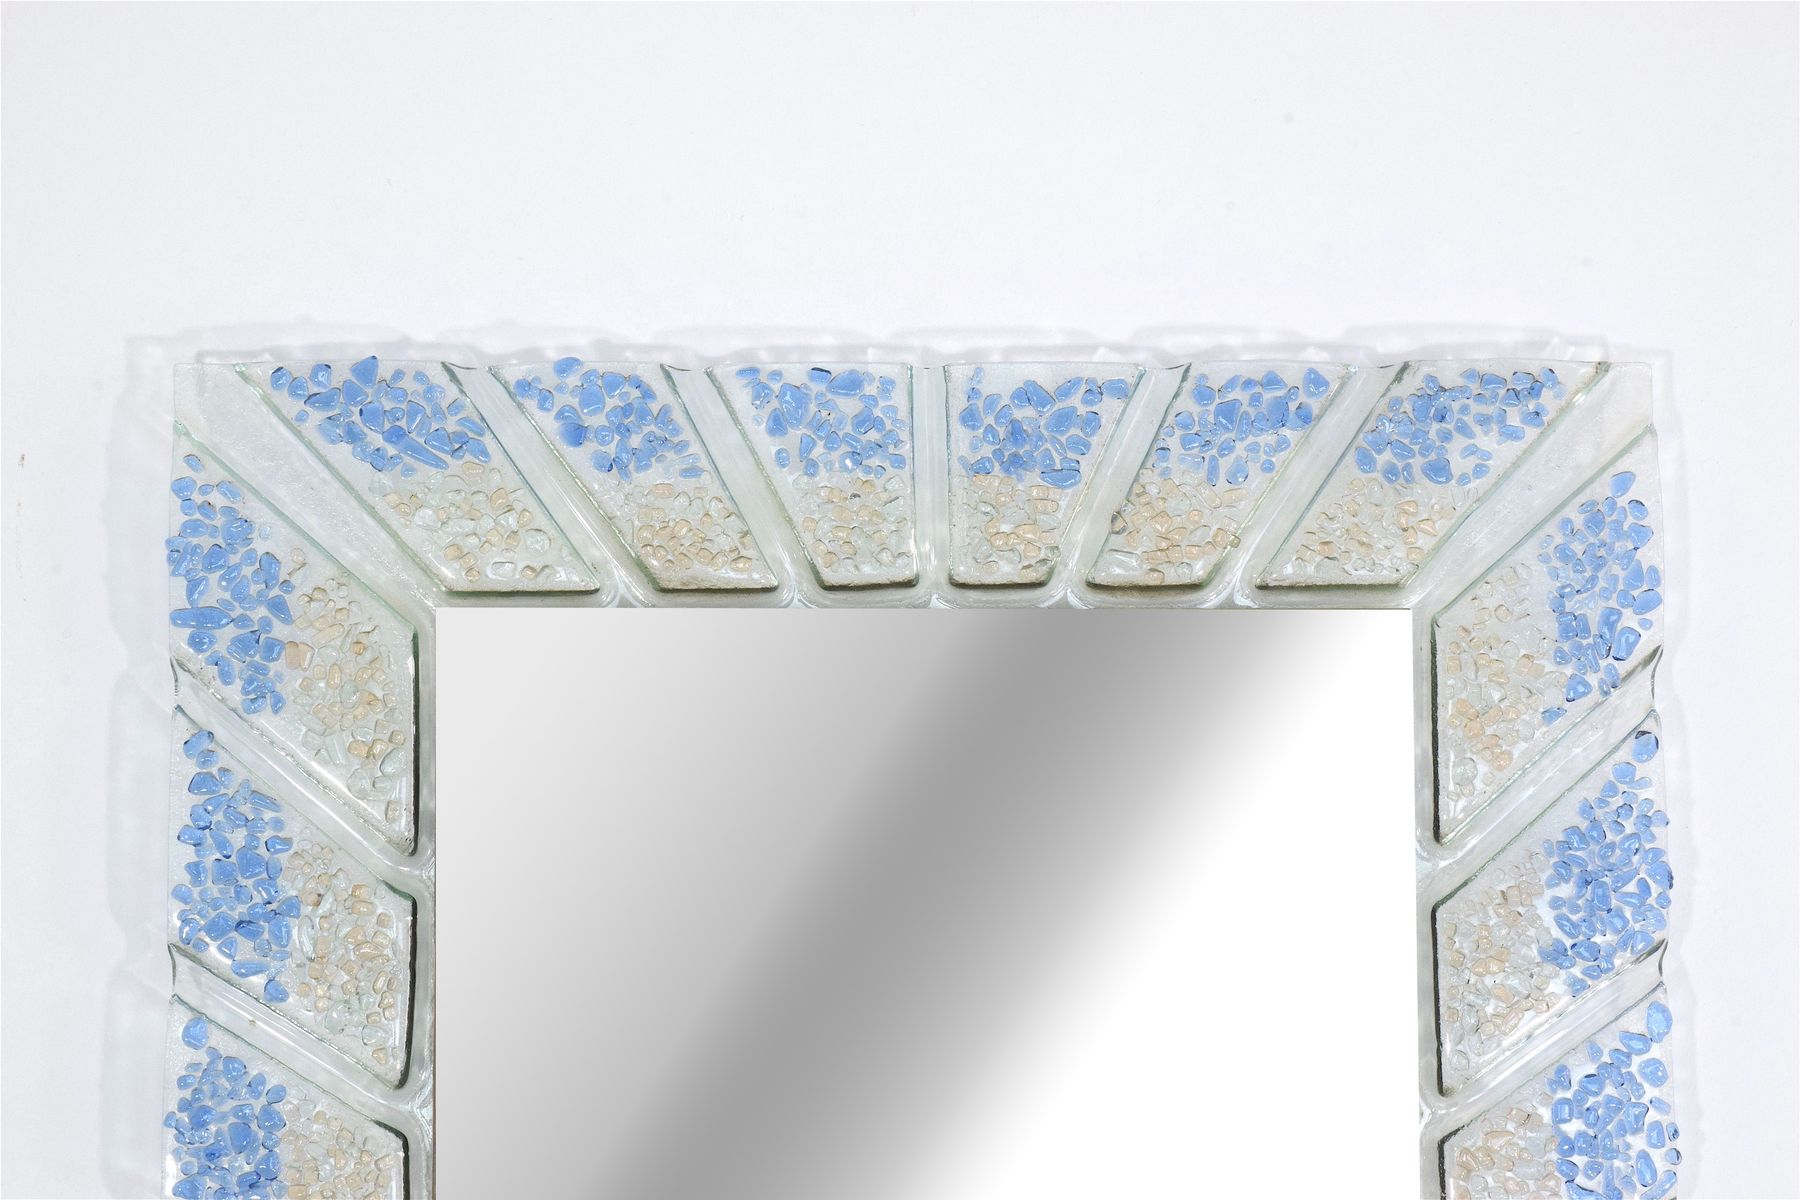 Vintage mid century murano glass mirror 1970s for sale at for Glass and mirror company